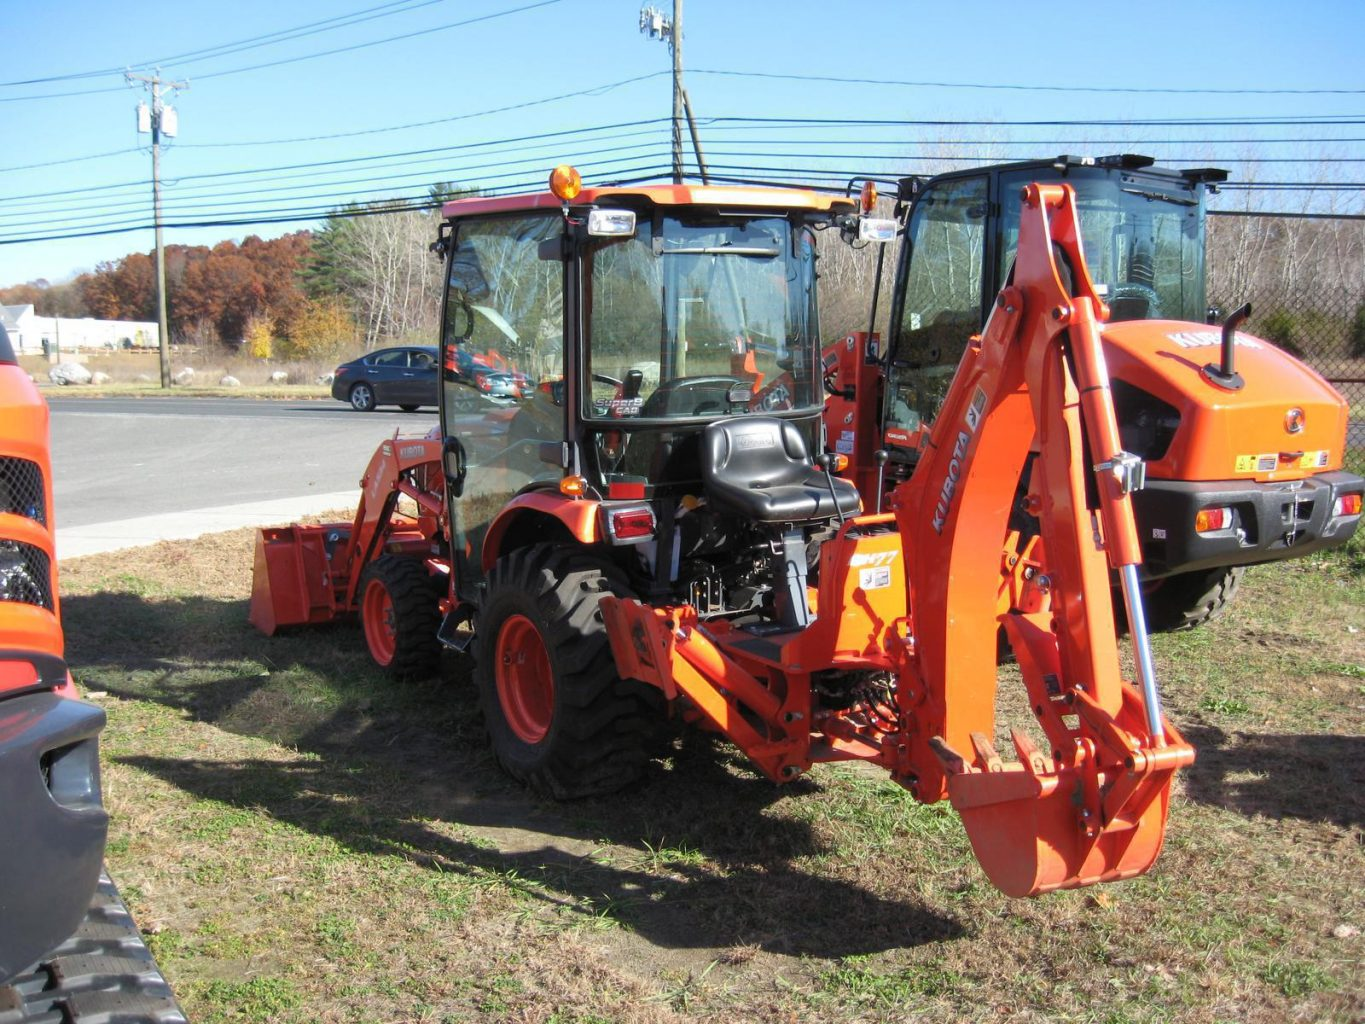 Kubota B3350 Compact Tractors Price, Specs, Features, Review